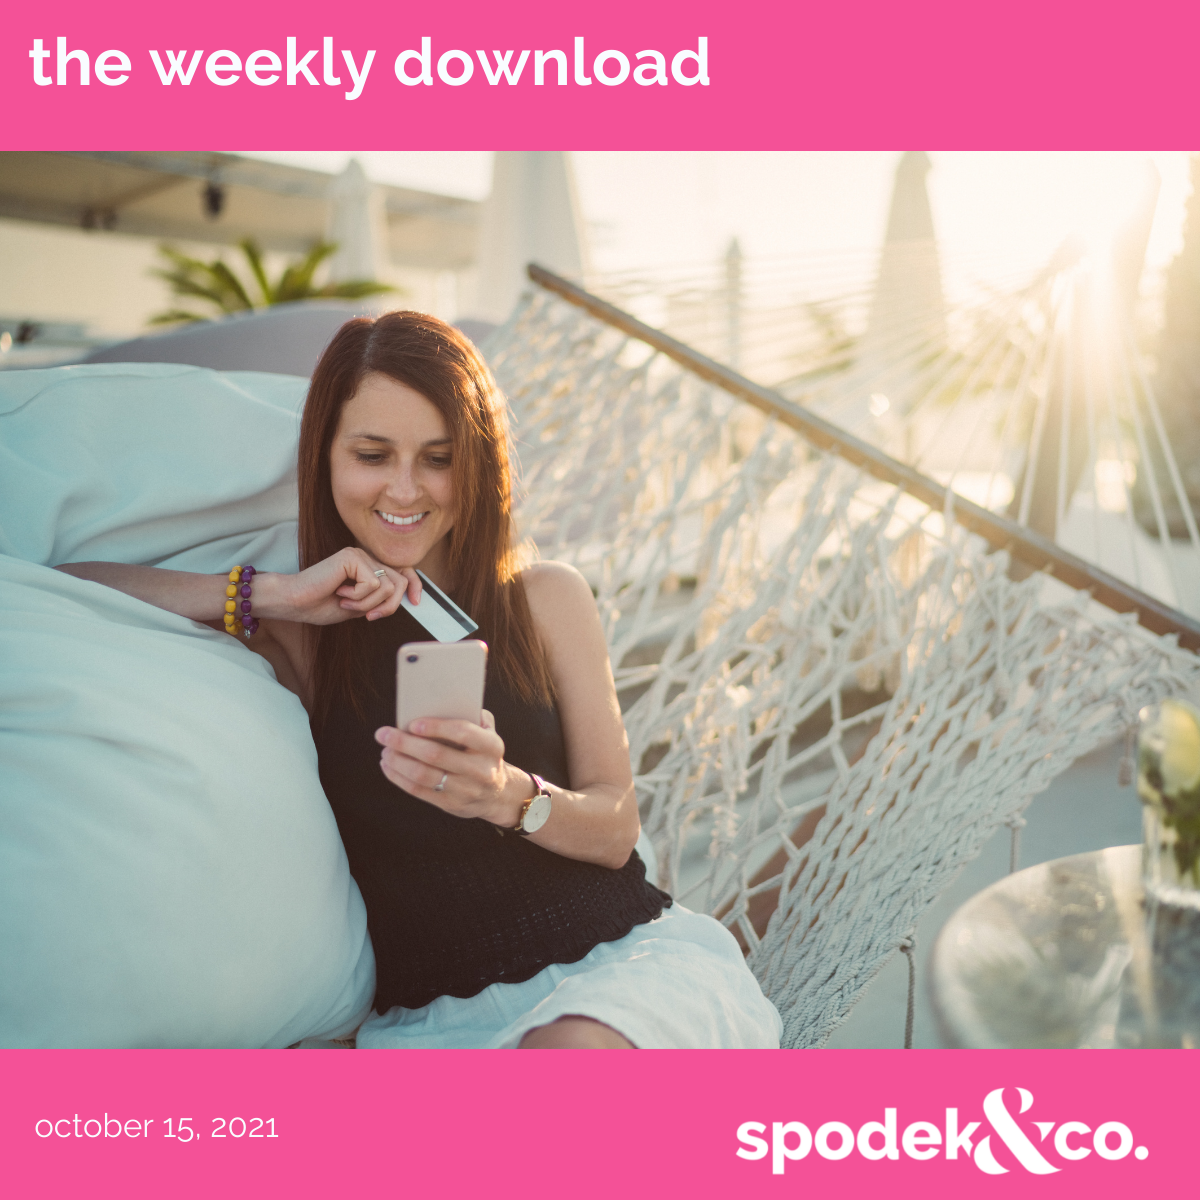 The Weekly Download – October 15, 2021